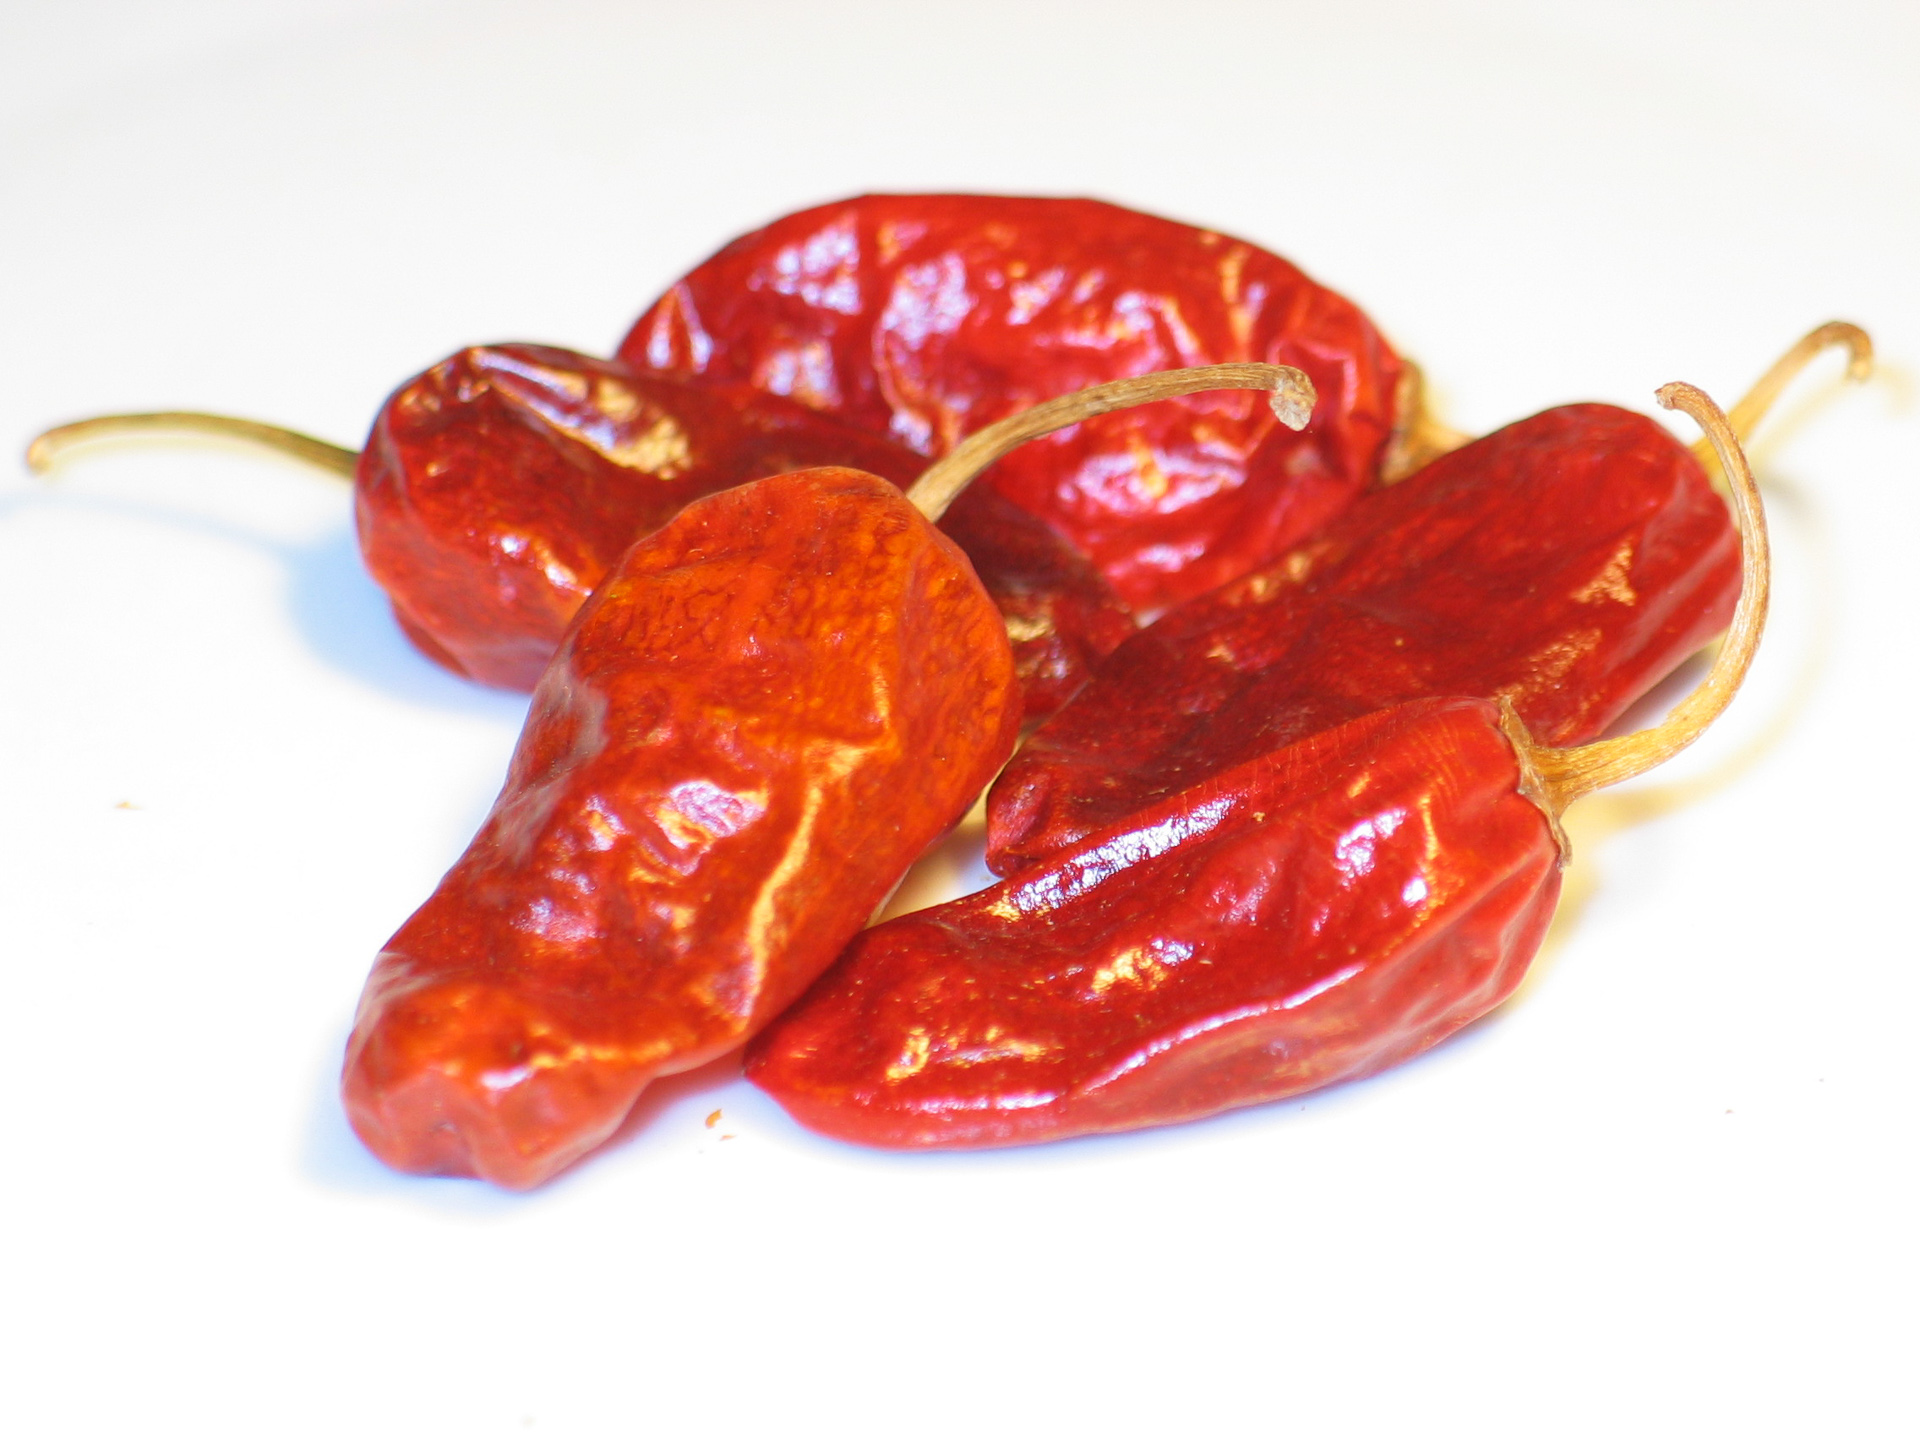 Himodi Tf - Capsicum annuum - Chilisorte